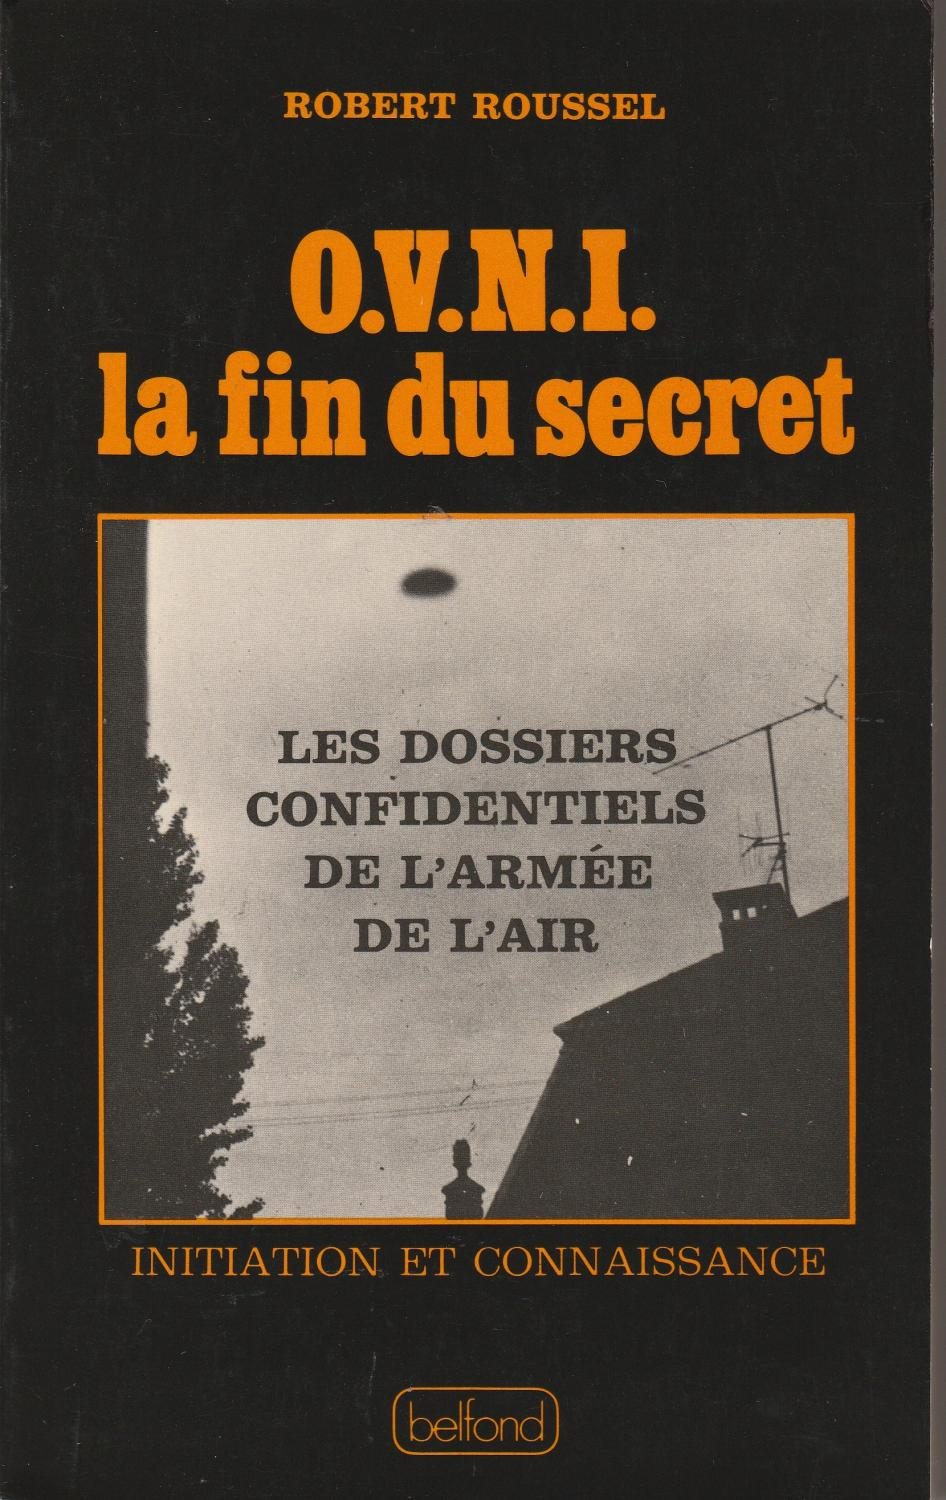 Robert Roussel – OVNI, la fin du secret